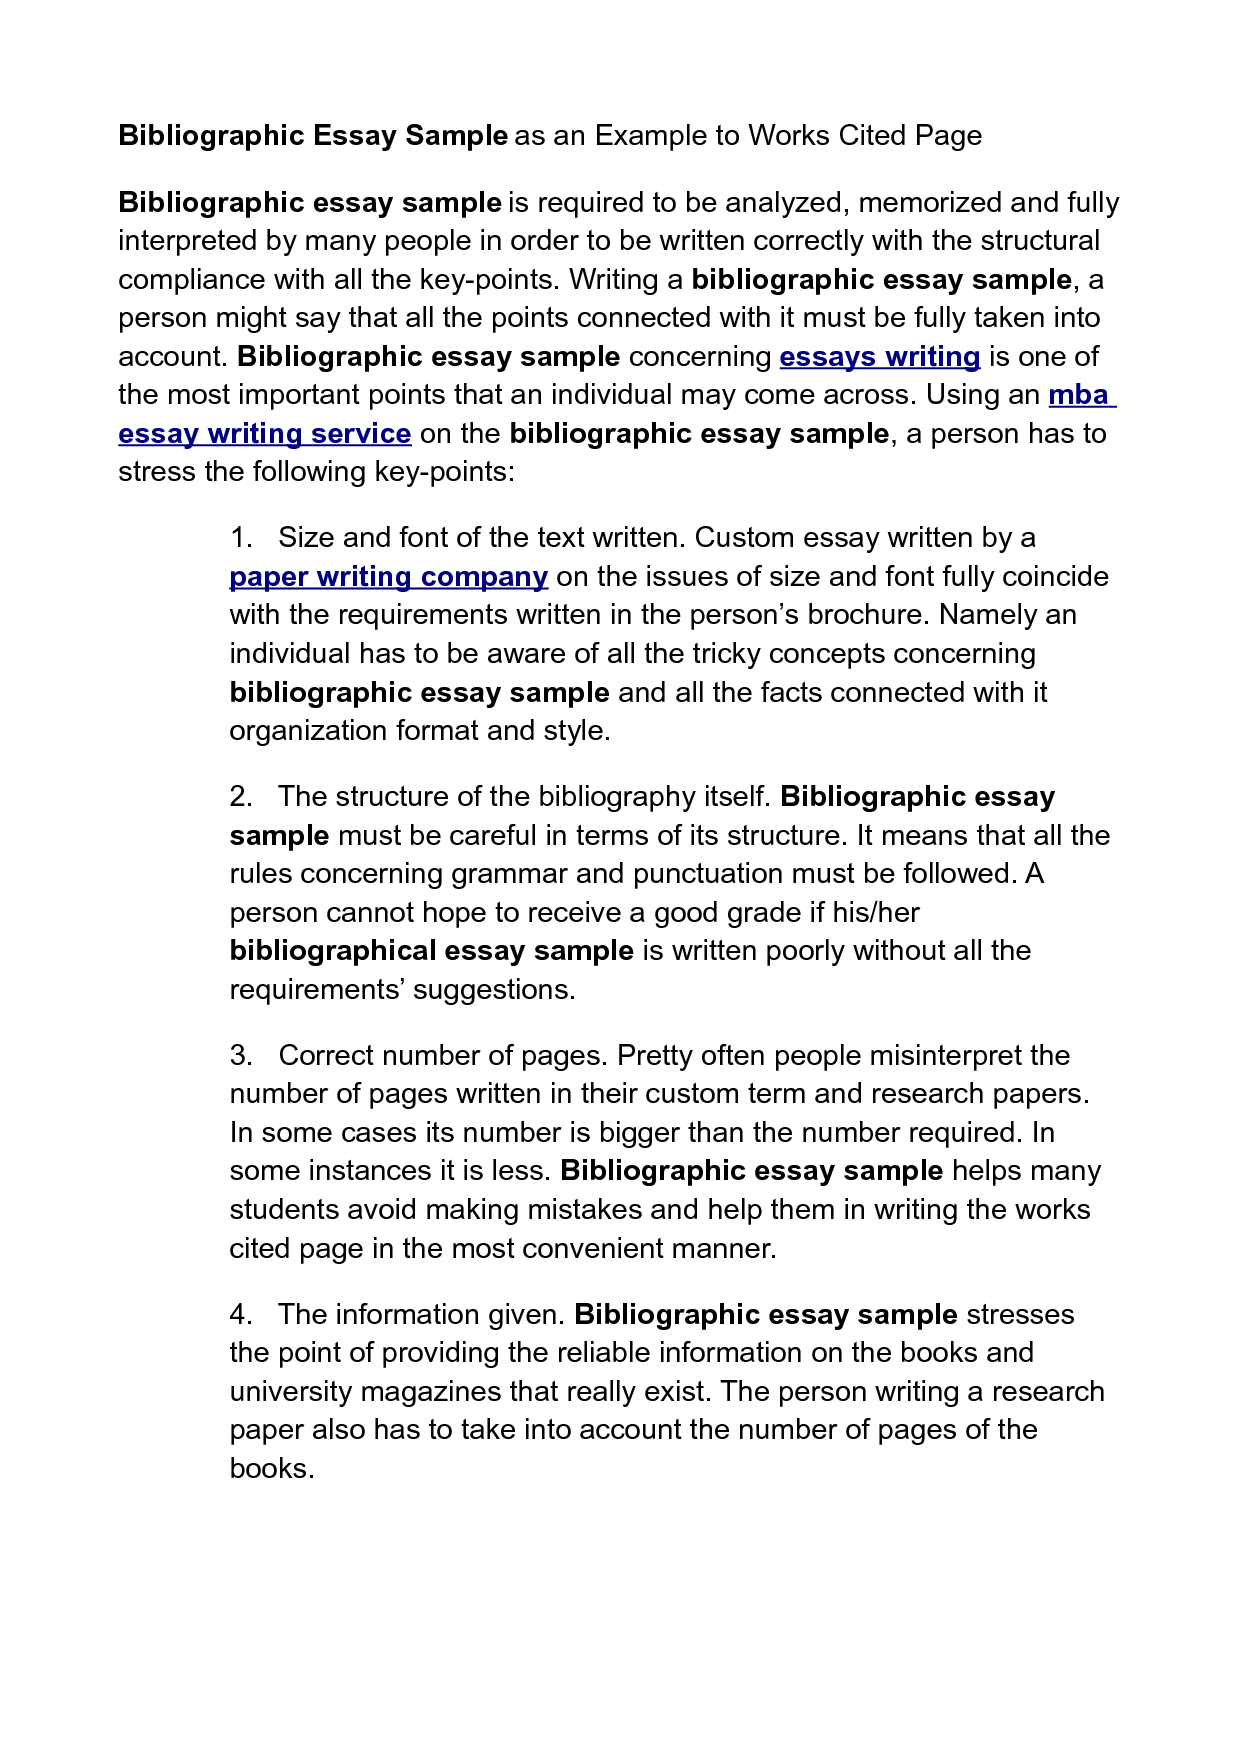 018 How To Cite An Essay Example Sample Persuasive With Works Cited Of Mla L Archaicawful Unpublished Paper In Apa Style Anthology Full